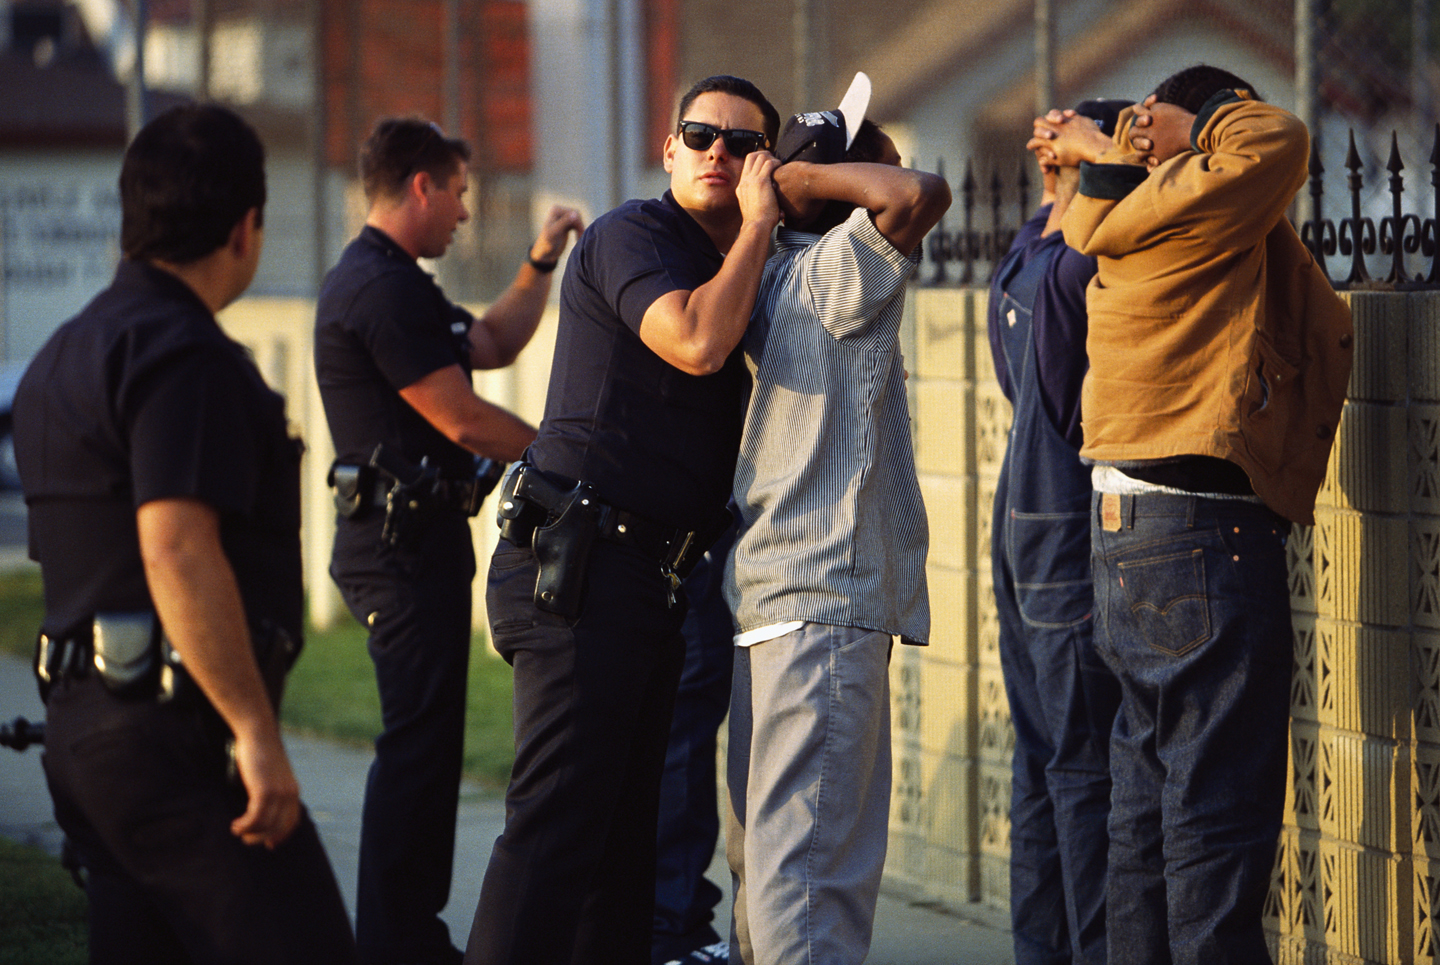 Los Angeles police check individuals in South Central LA during Rodney King trial.